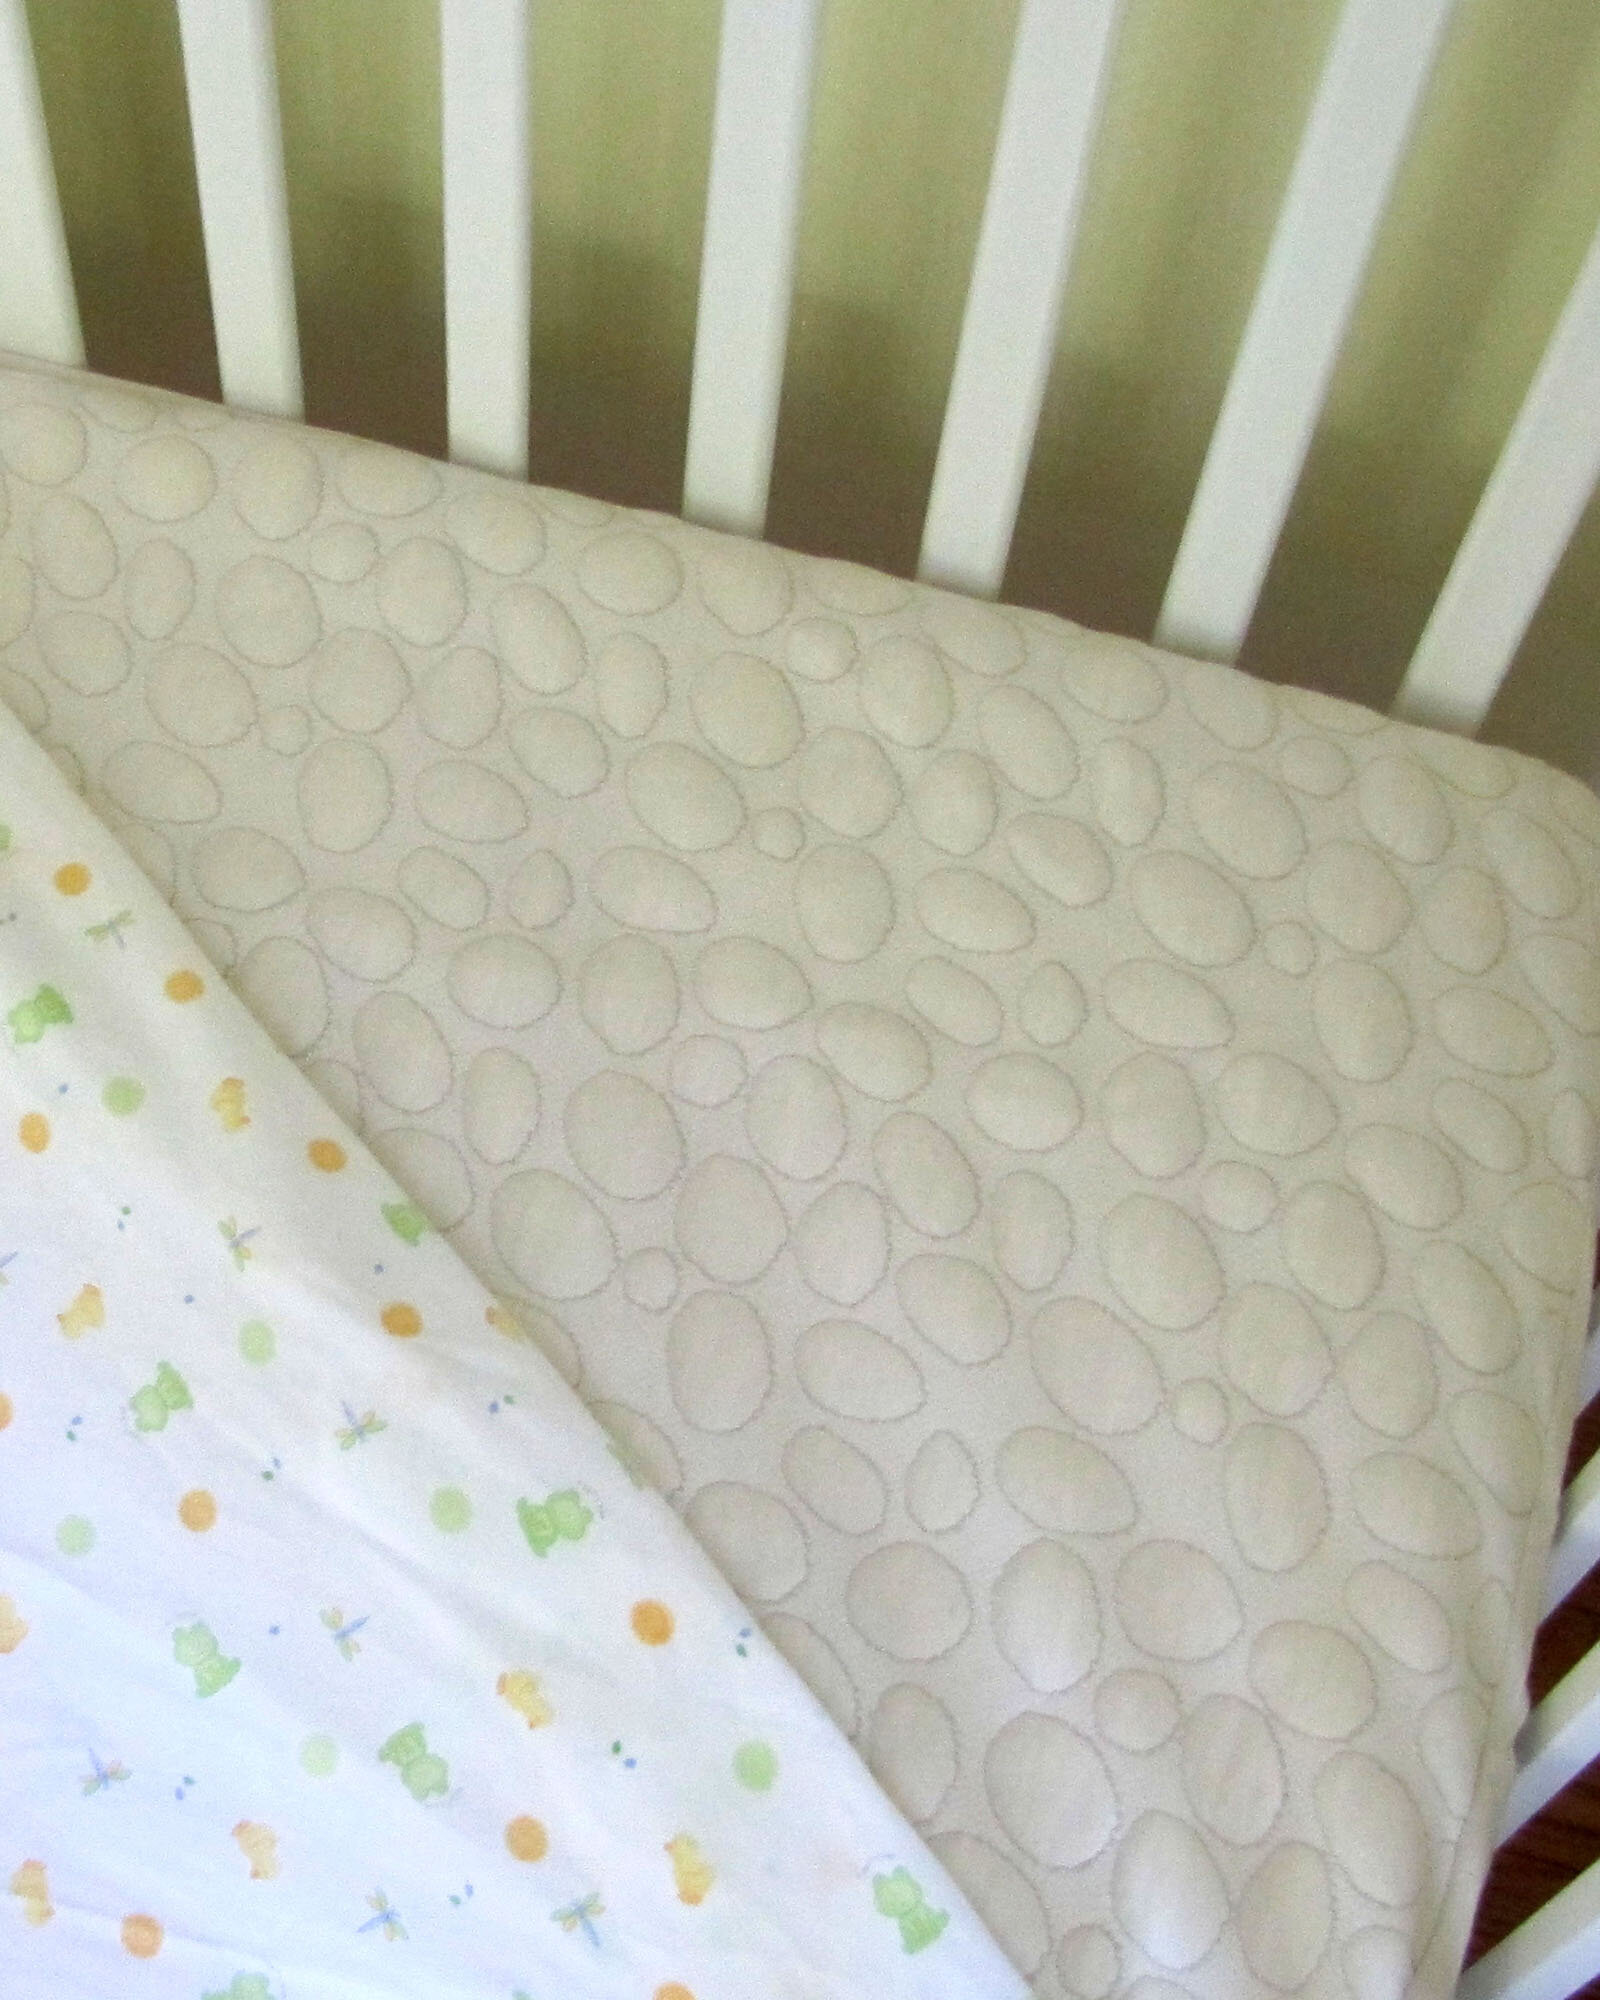 Quilted Mattress Protectors Topper Fitted Pillow Cover,bunk,cot Bed All Sizes Fashionable Patterns Bedding